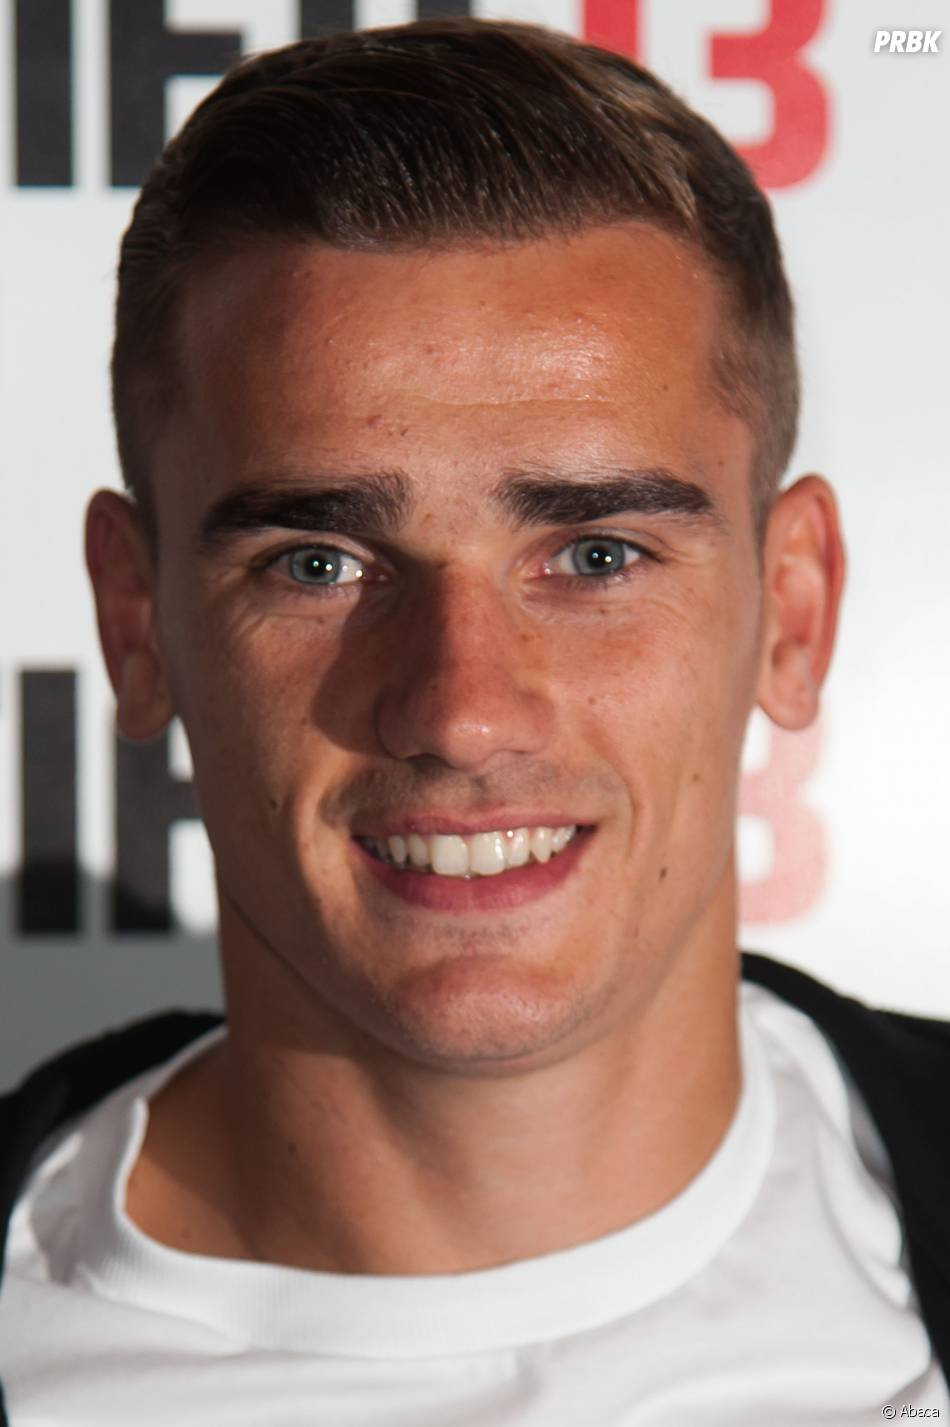 antoine griezmann coupe la brosse en 2012 purebreak. Black Bedroom Furniture Sets. Home Design Ideas